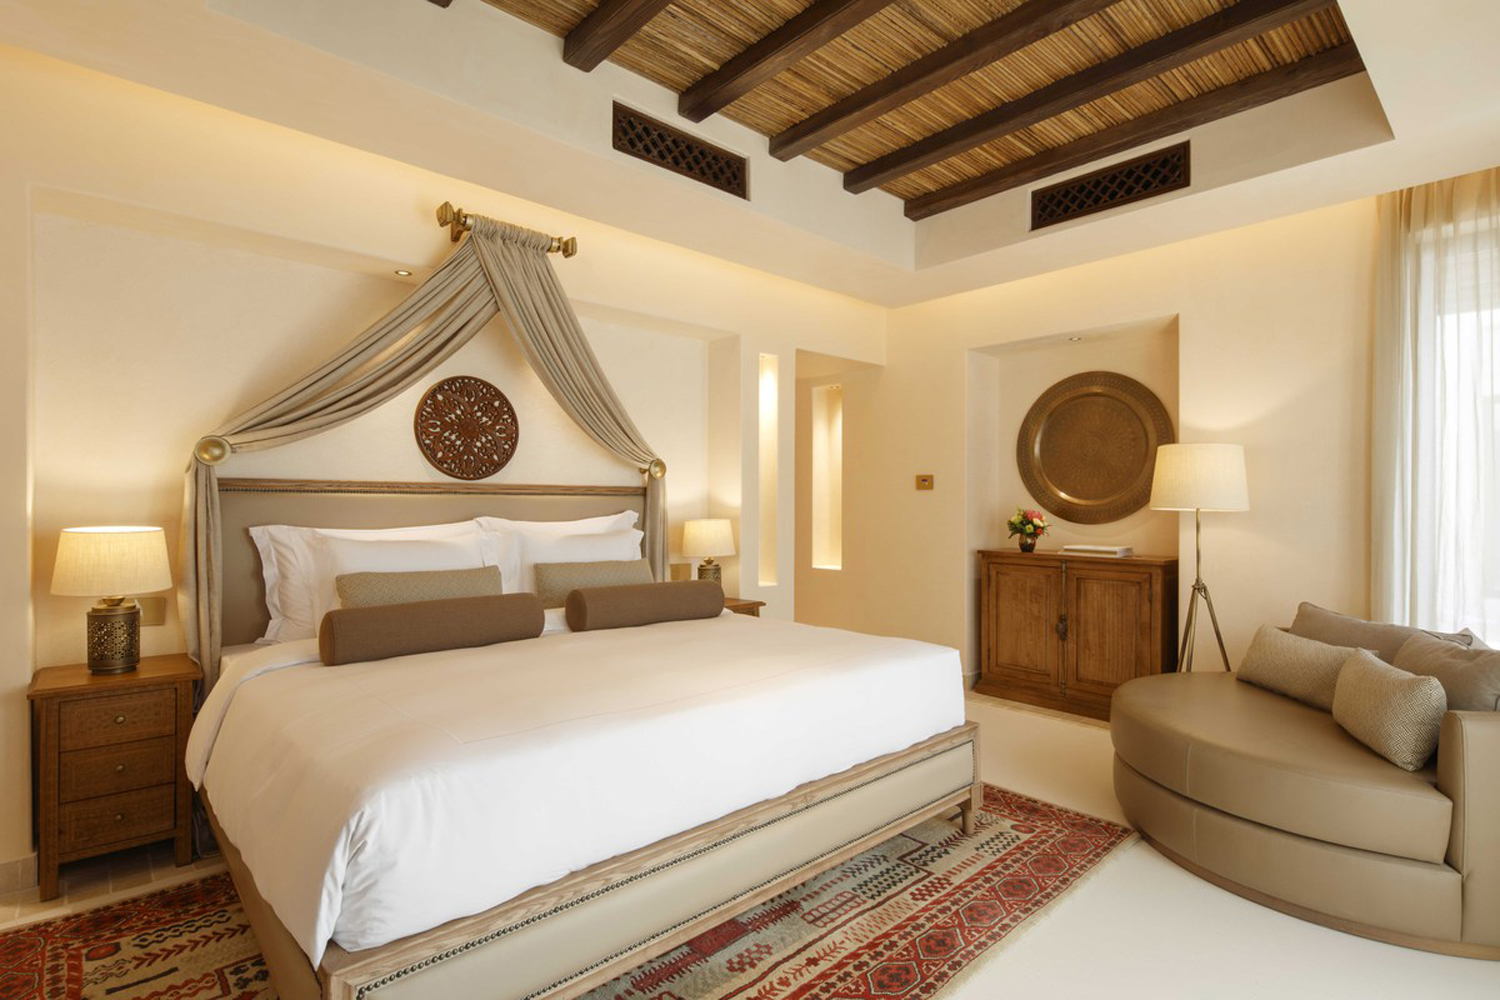 Al Wathba Desert Resort & Spa opens for business in Abu Dhabi